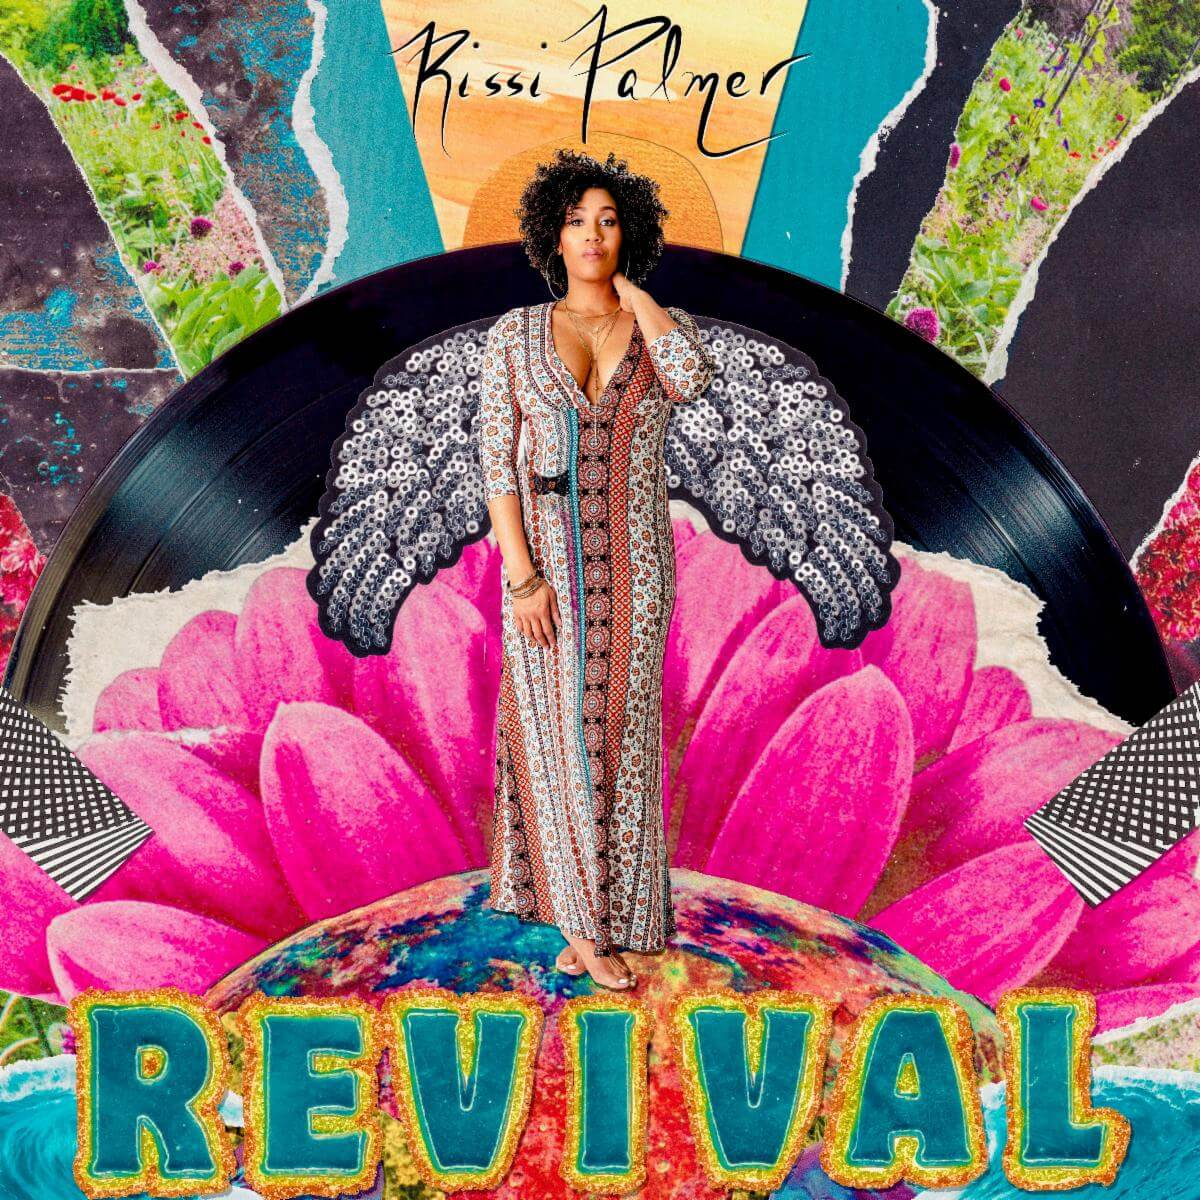 """Rissi Palmer Announces October Release for """"Revival"""""""